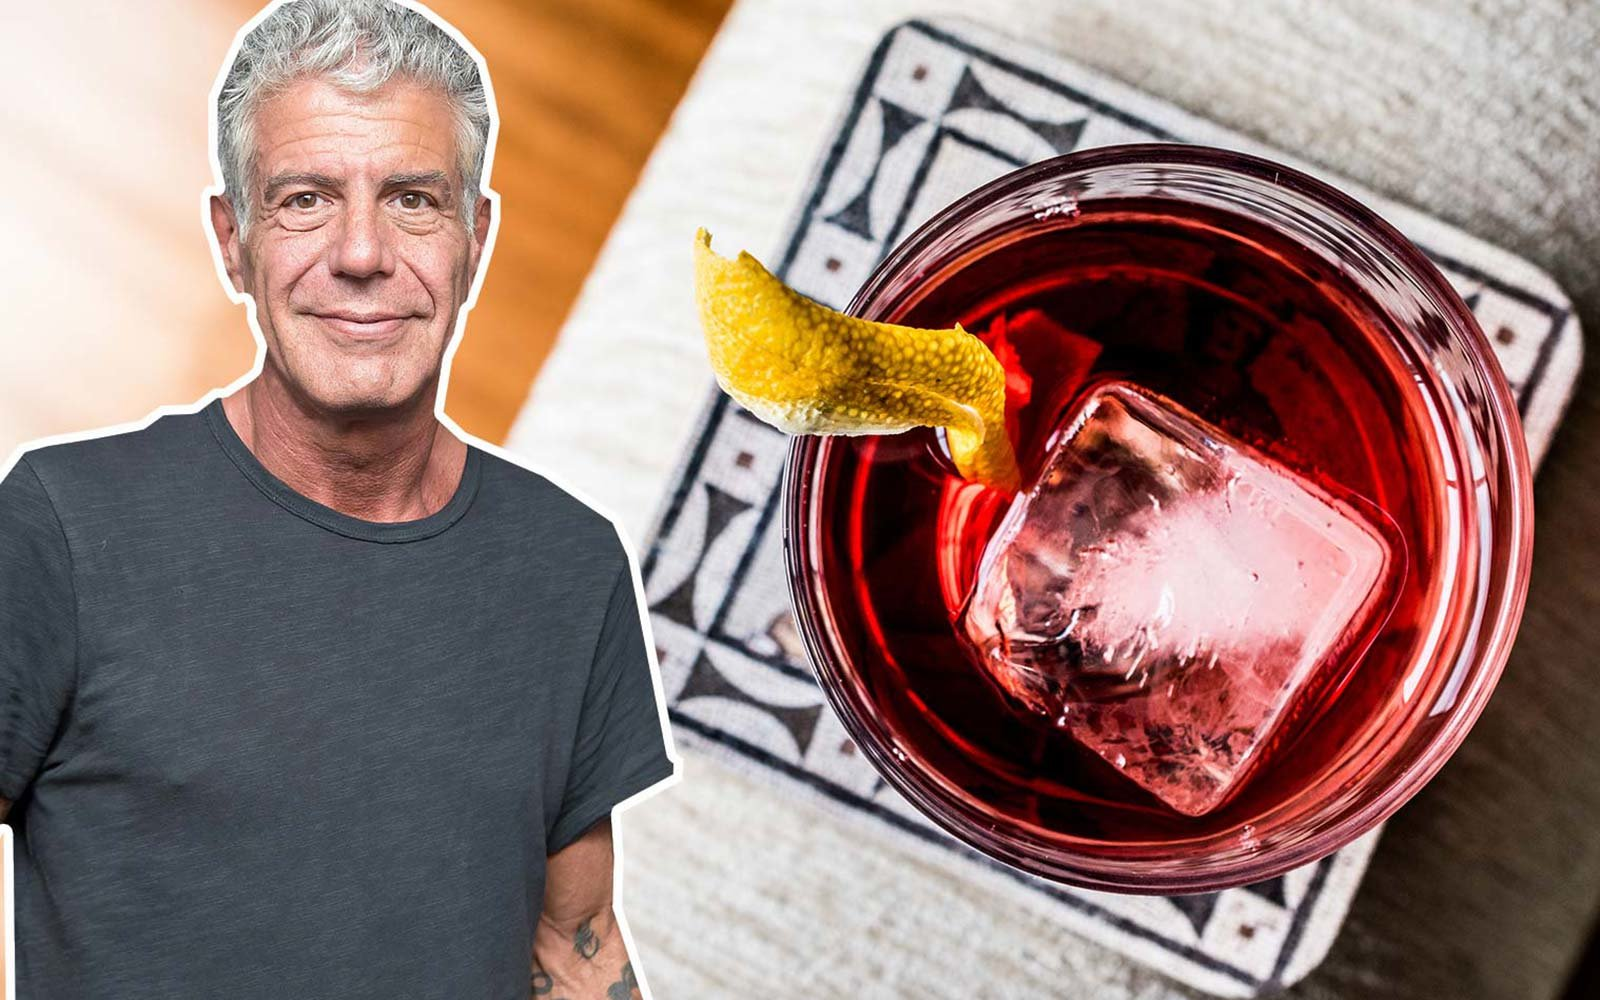 Negroni Cocktail with lemon peel and ice Anthony Bourdain